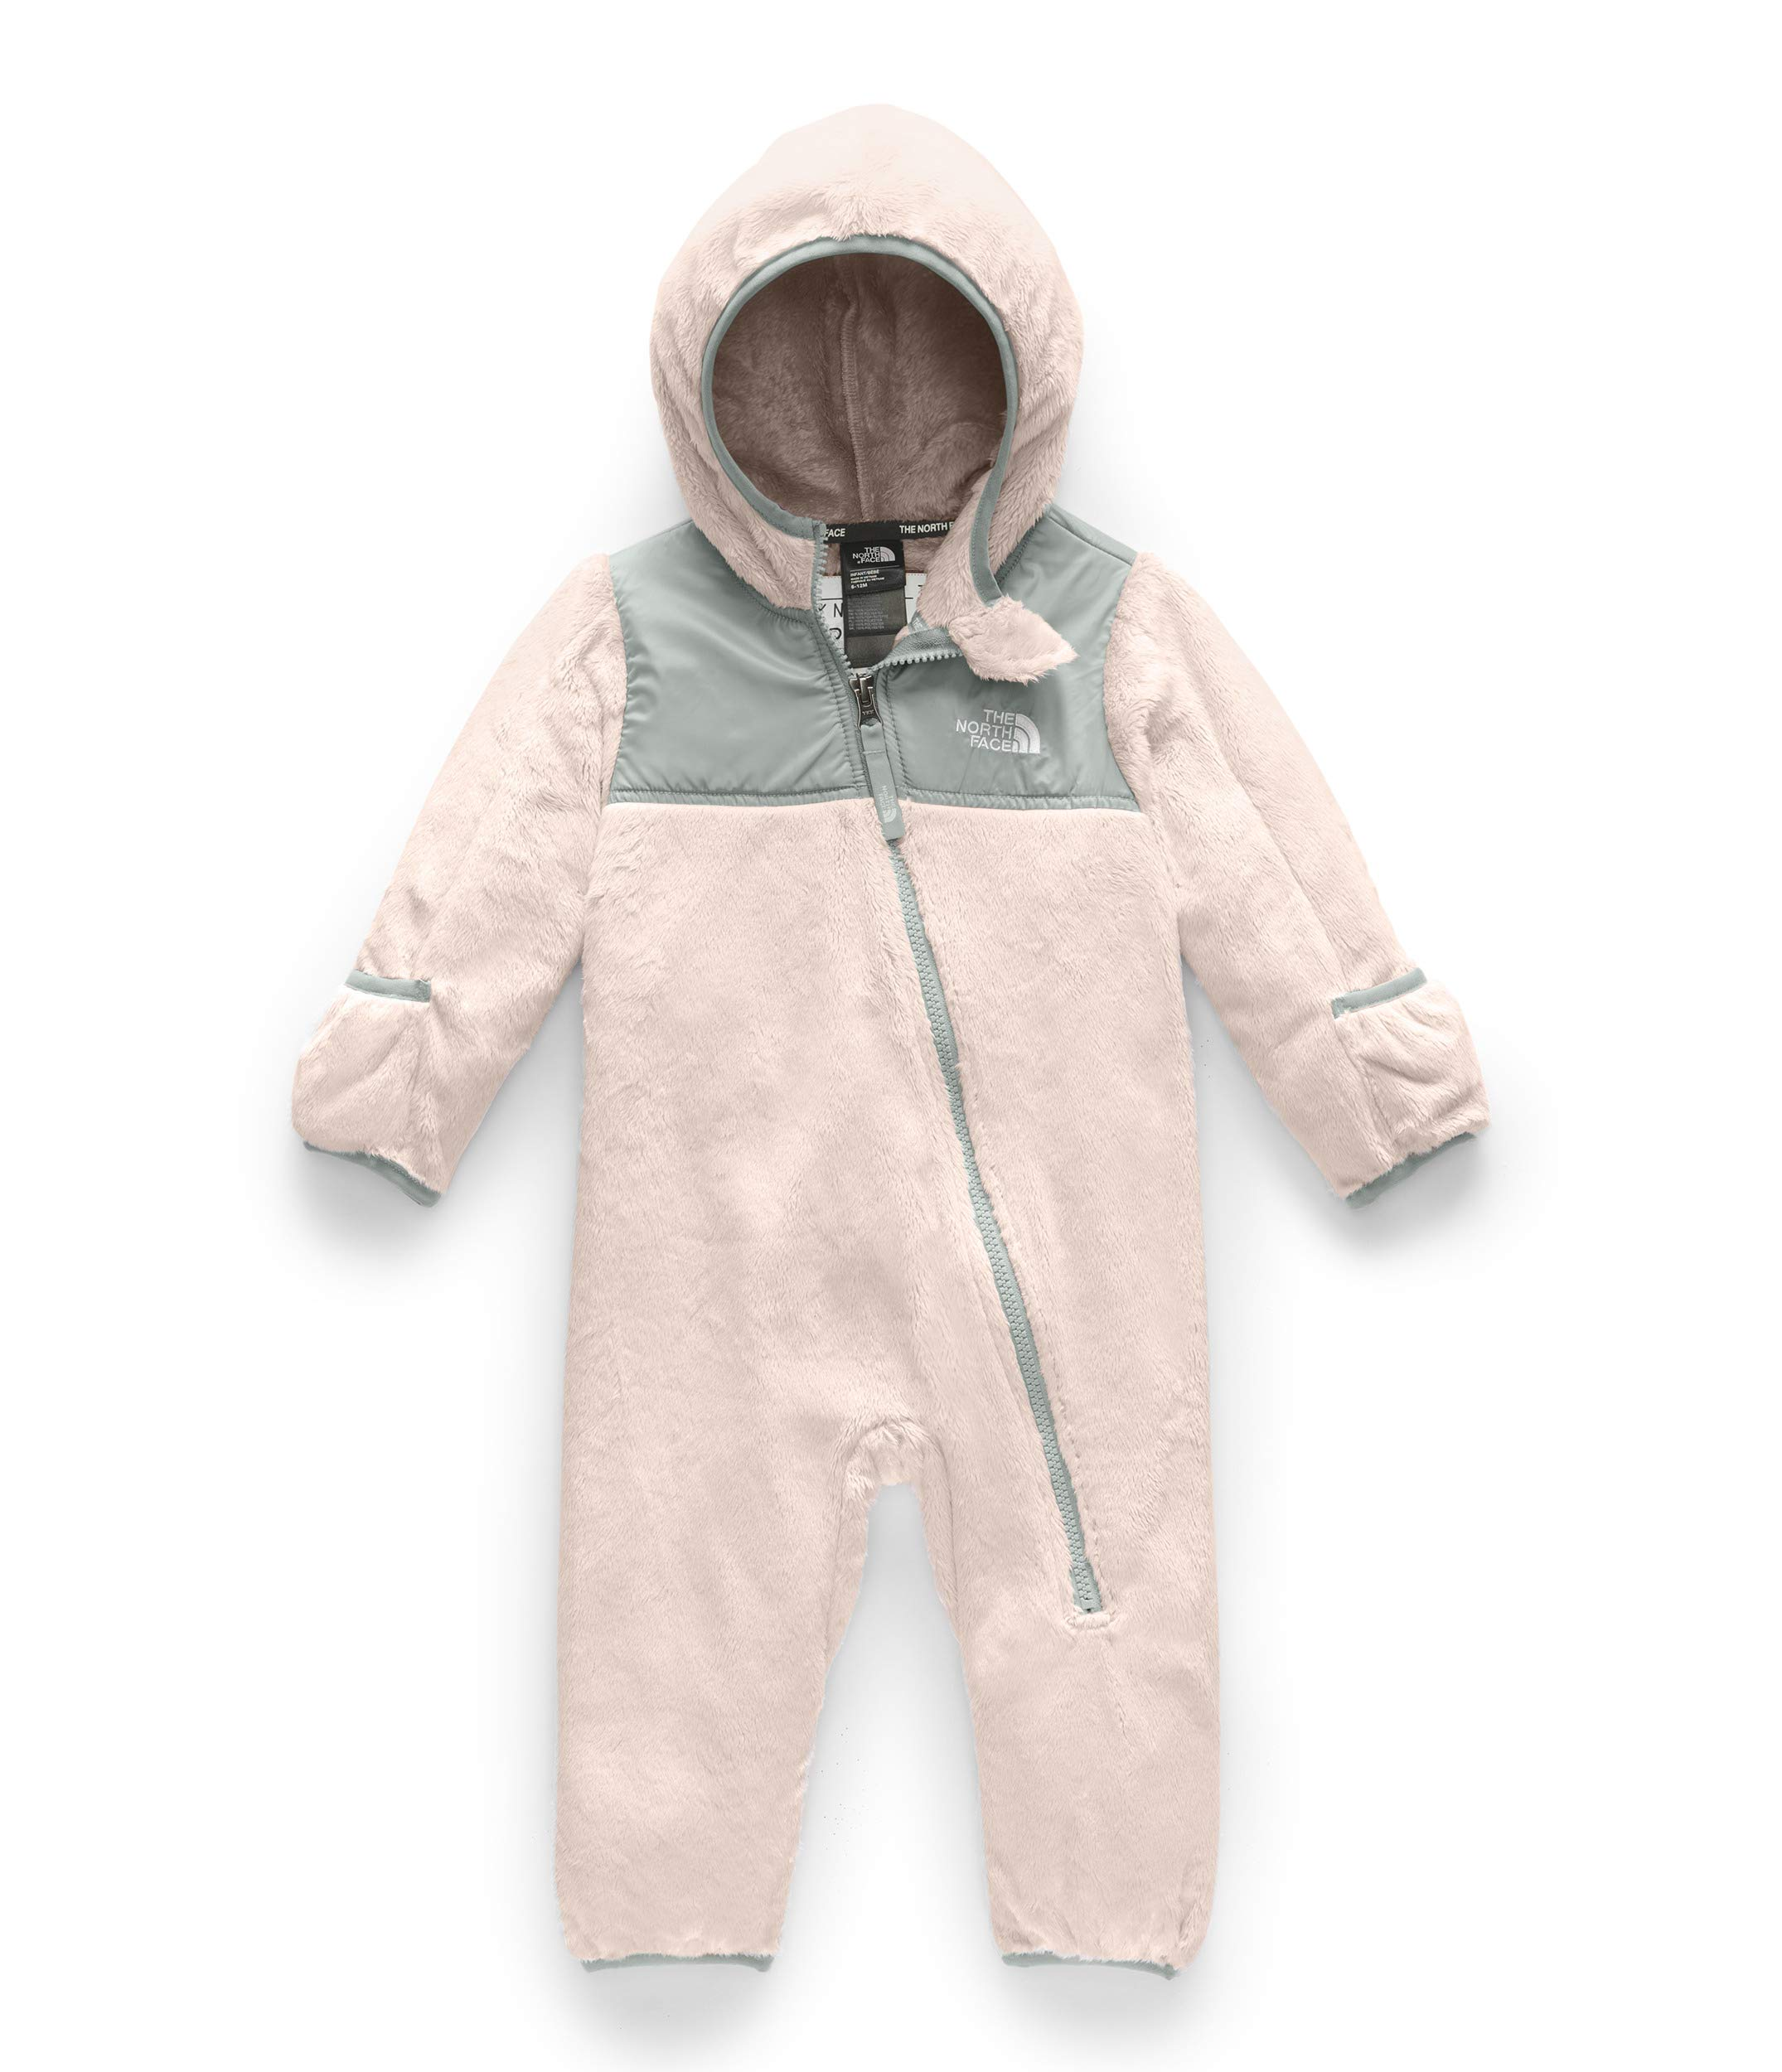 The North Face Infant OSO One-Piece by The North Face